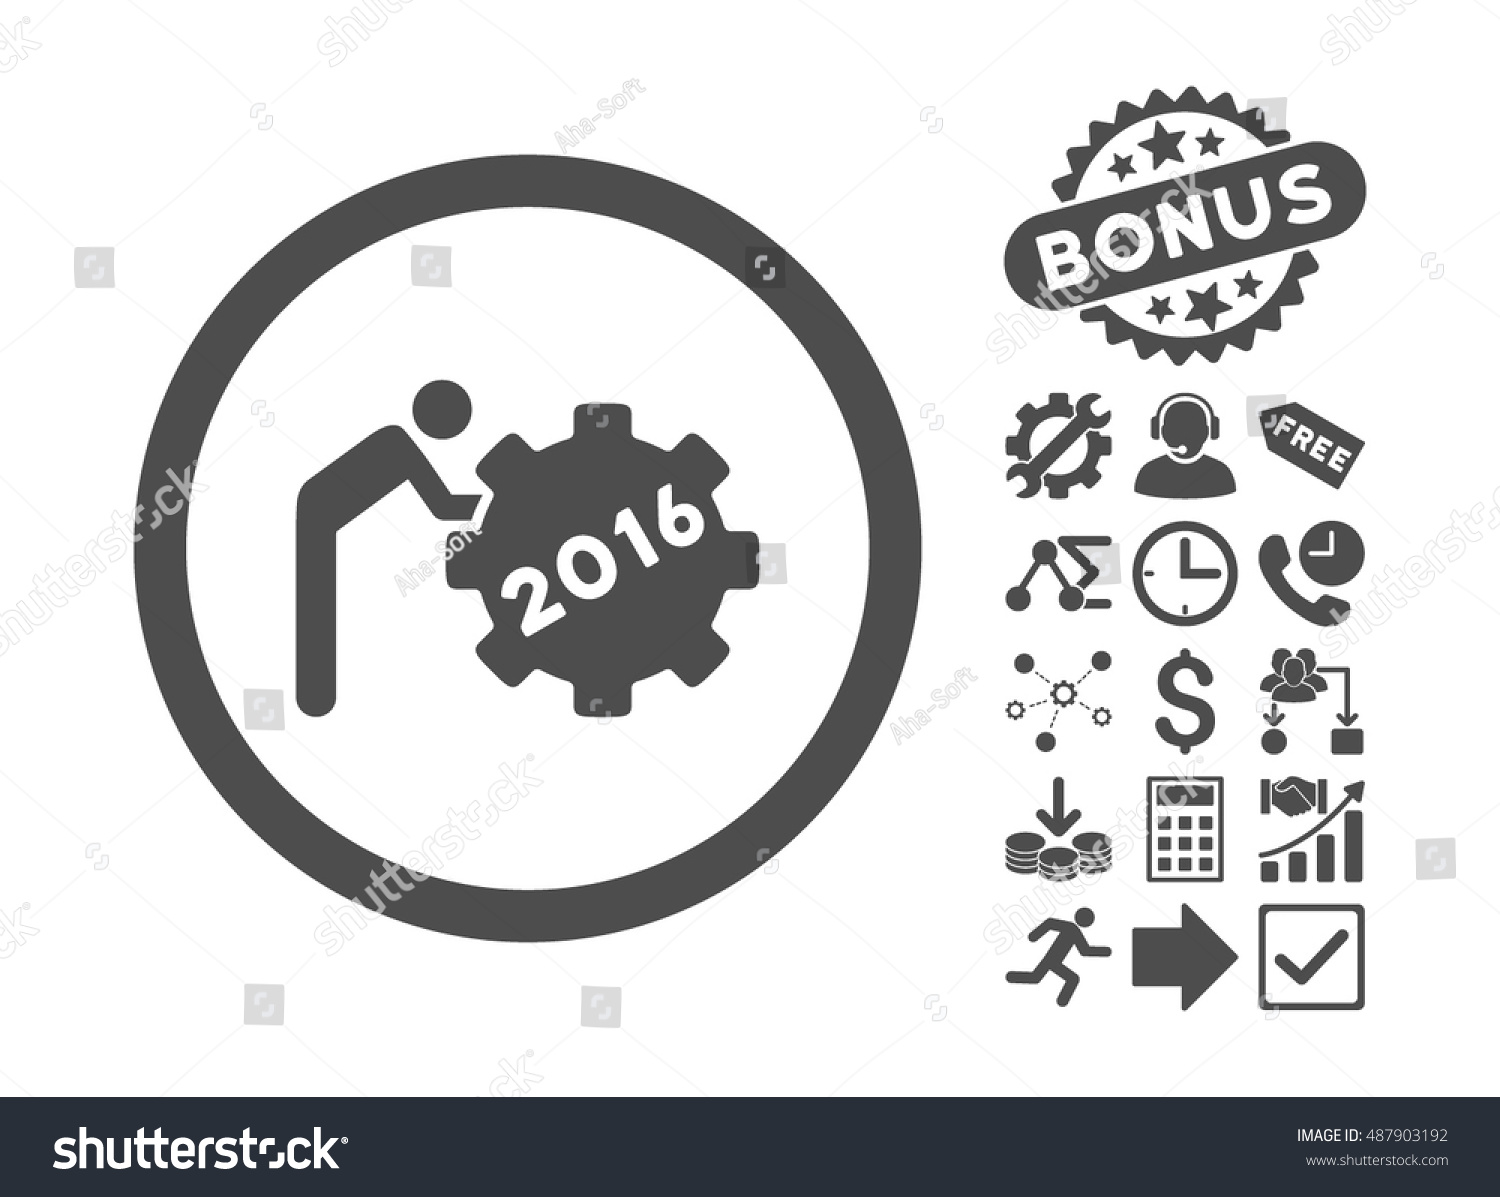 2016 working man icon bonus images stock vector 487903192 2016 working man icon with bonus images vector illustration style is flat iconic symbols biocorpaavc Images